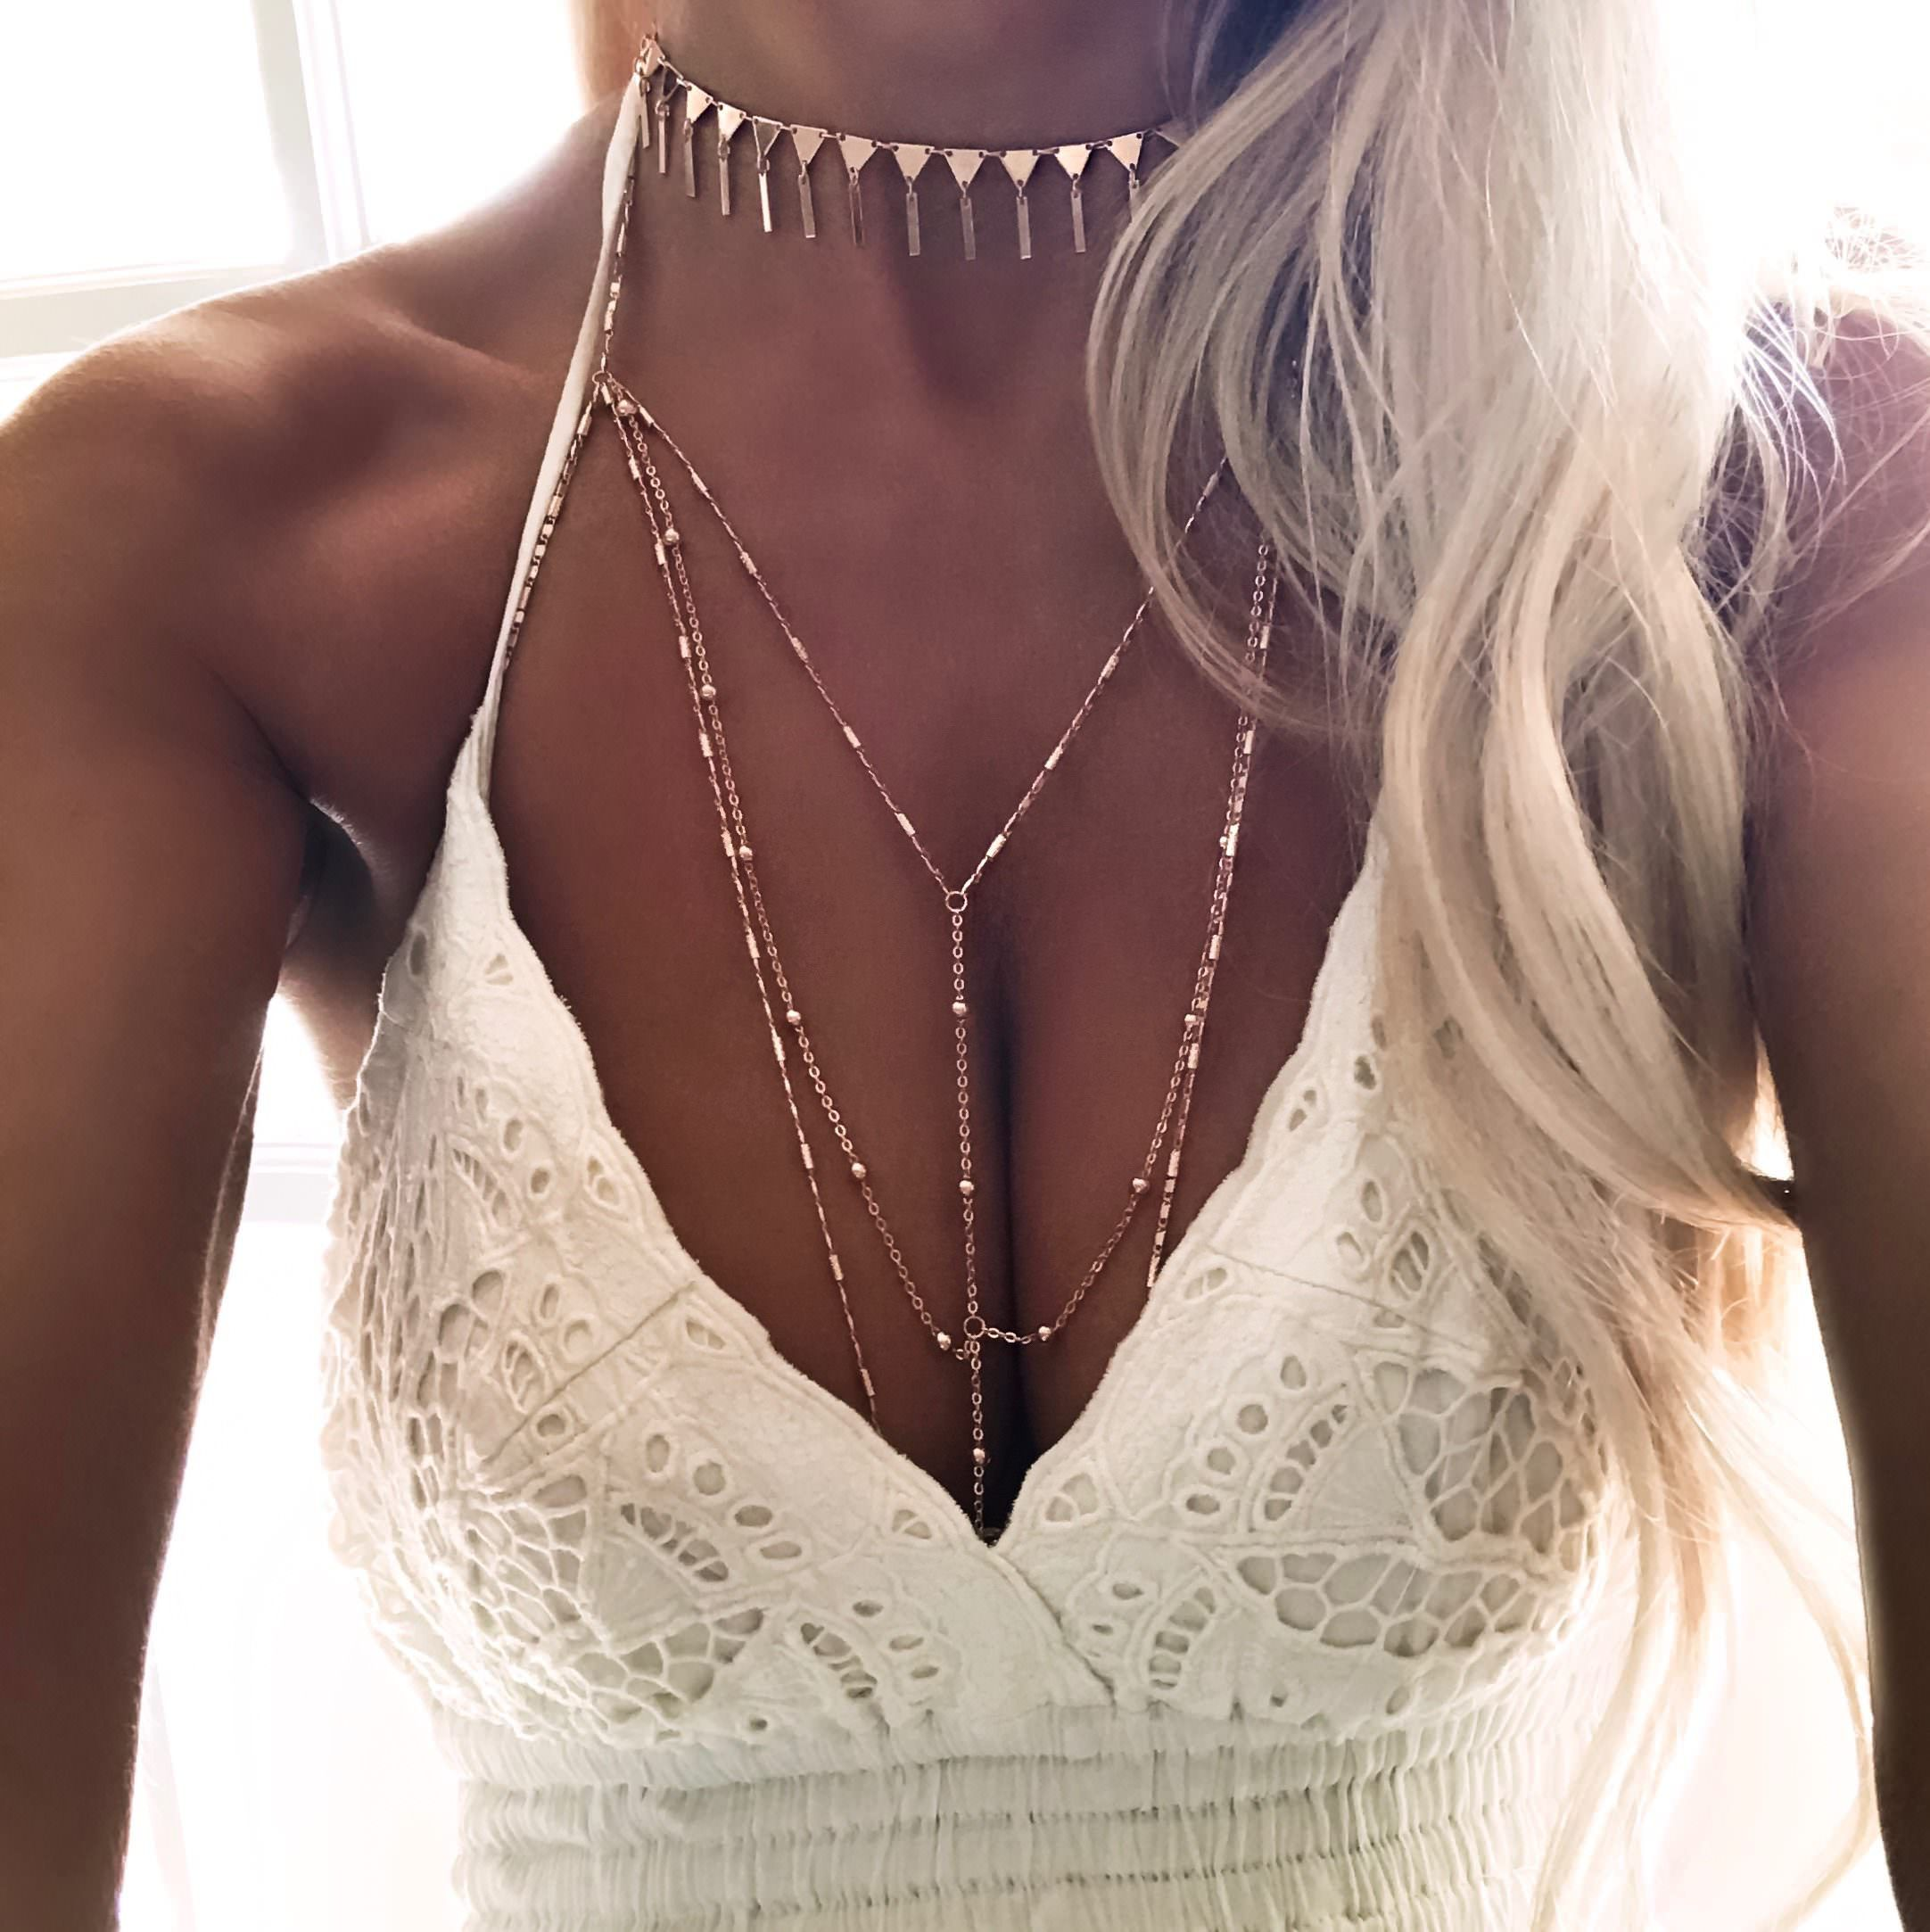 Gypsylovinlight Starlight Body Chain Rose Gold